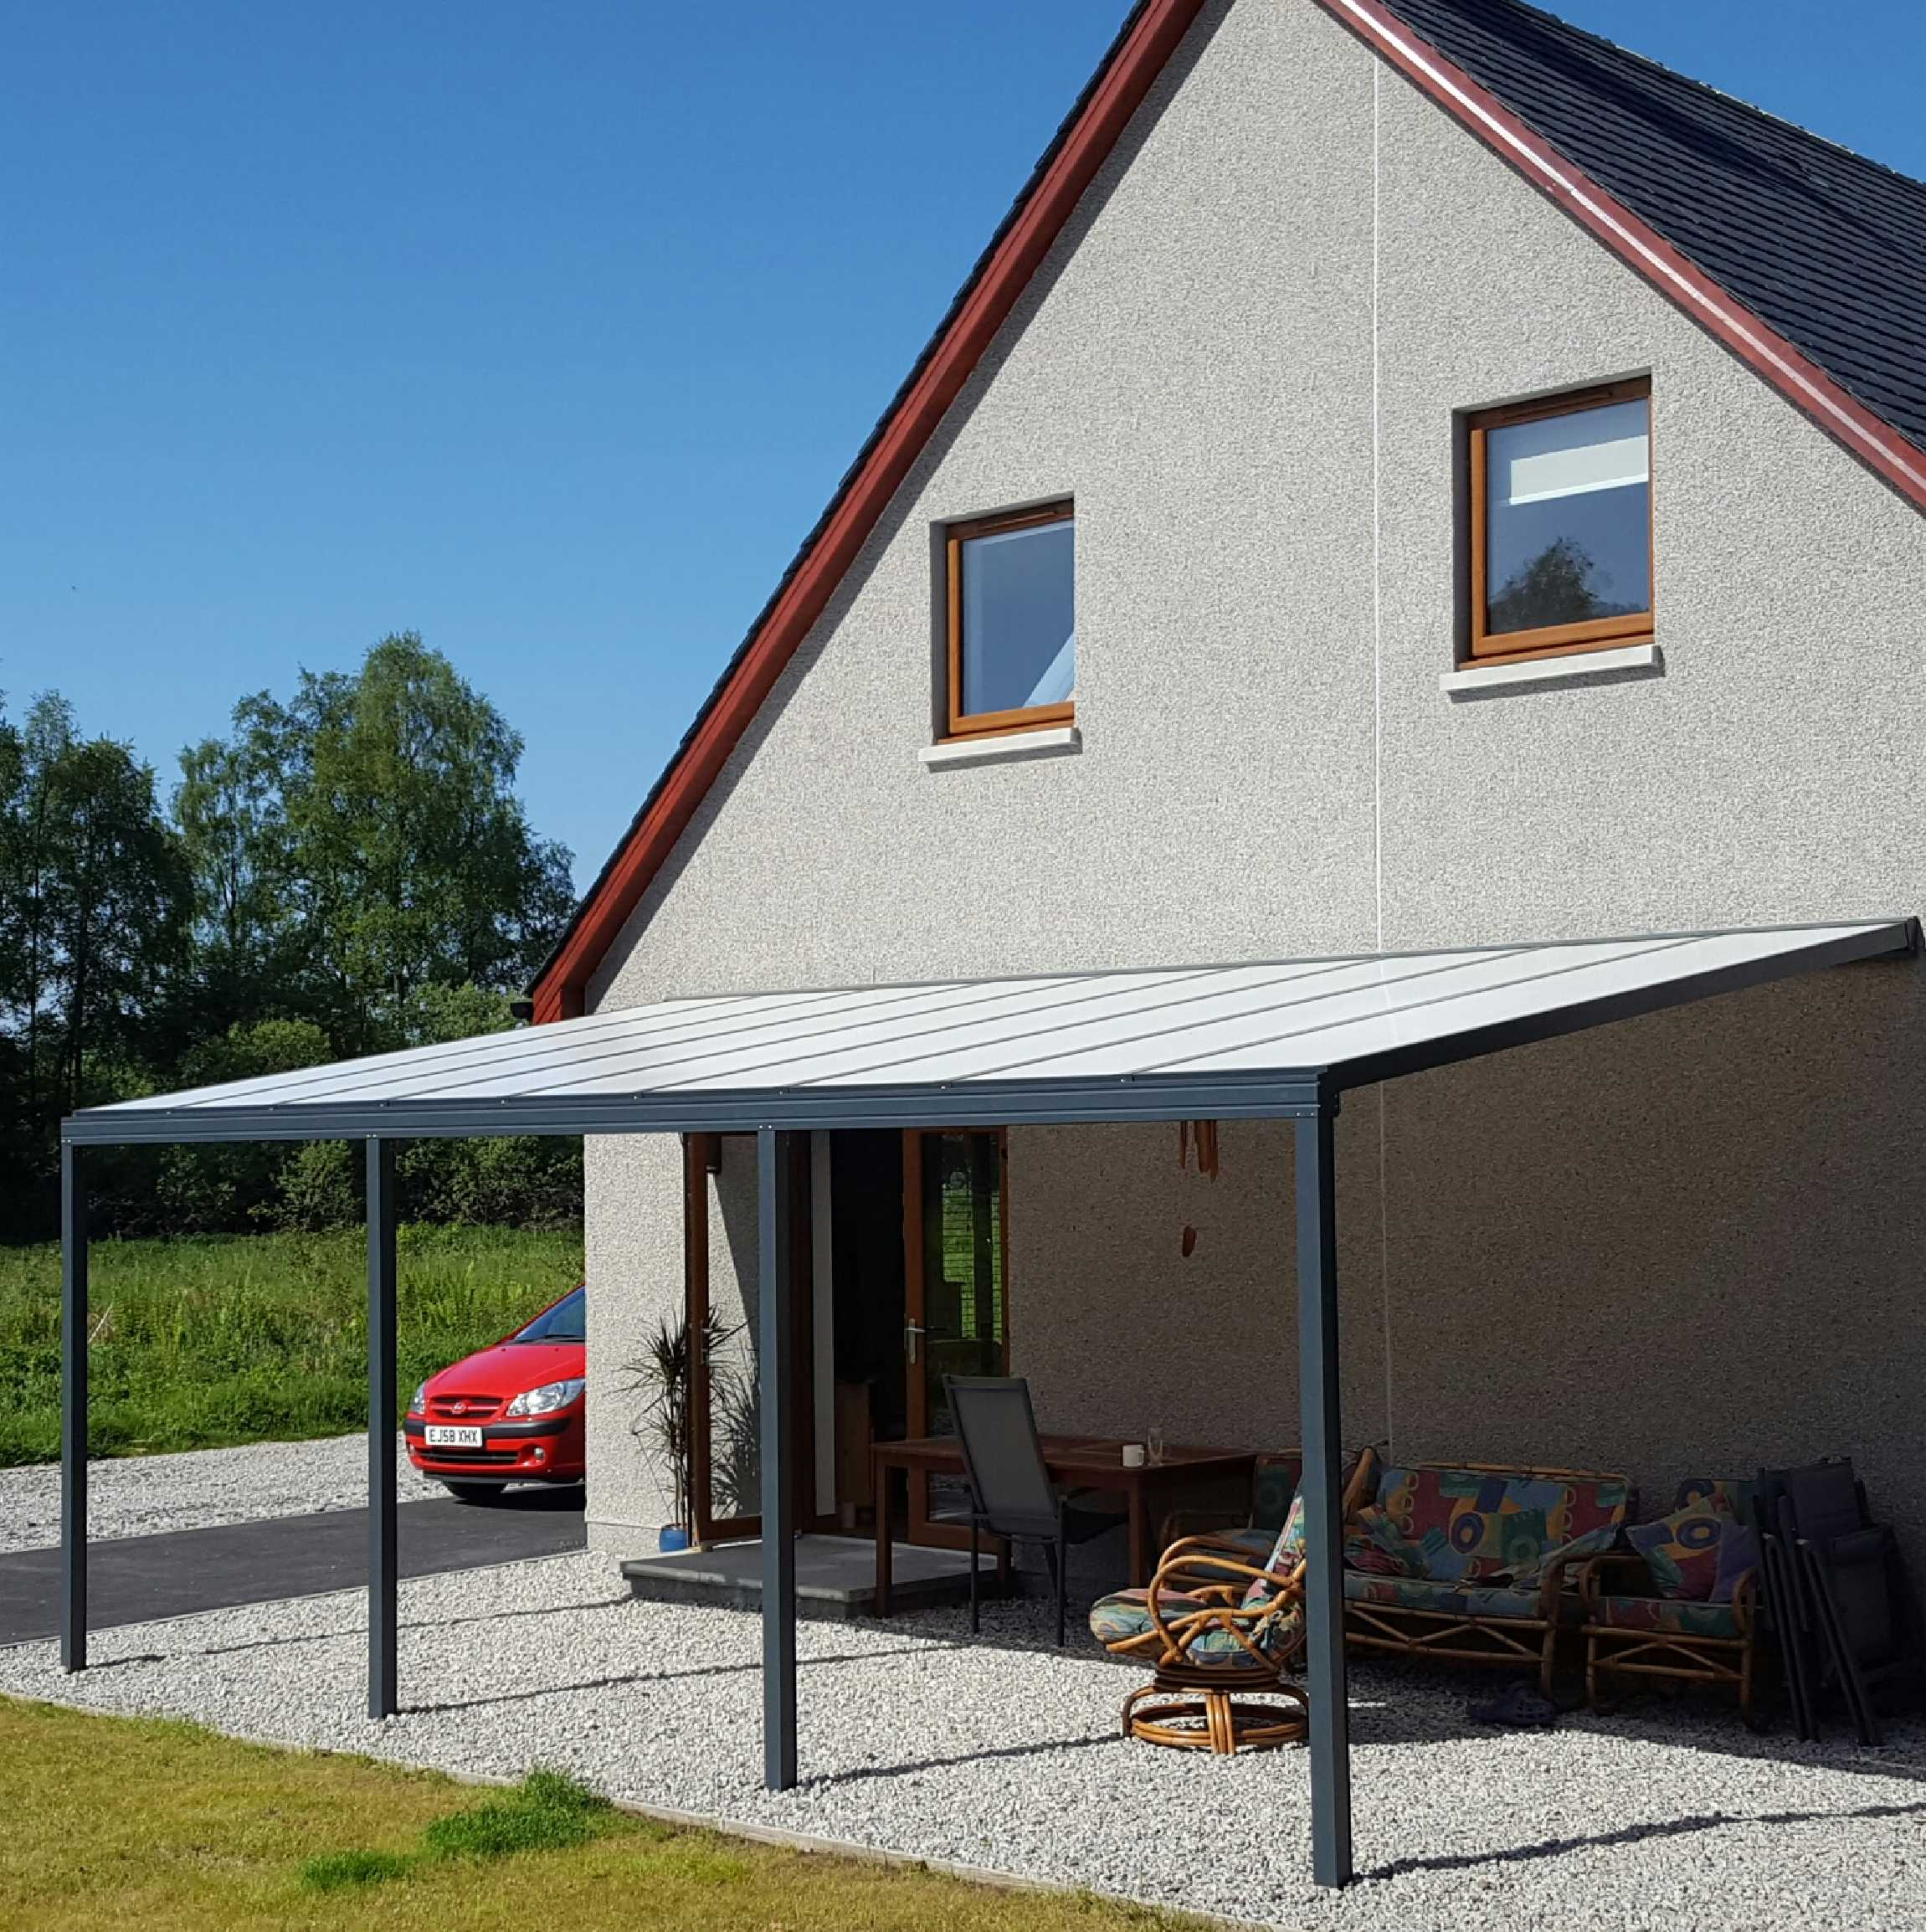 Great selection of Omega Smart Lean-To Canopy, Anthracite Grey, 16mm Polycarbonate Glazing - 4.8m (W) x 4.5m (P), (3) Supporting Posts